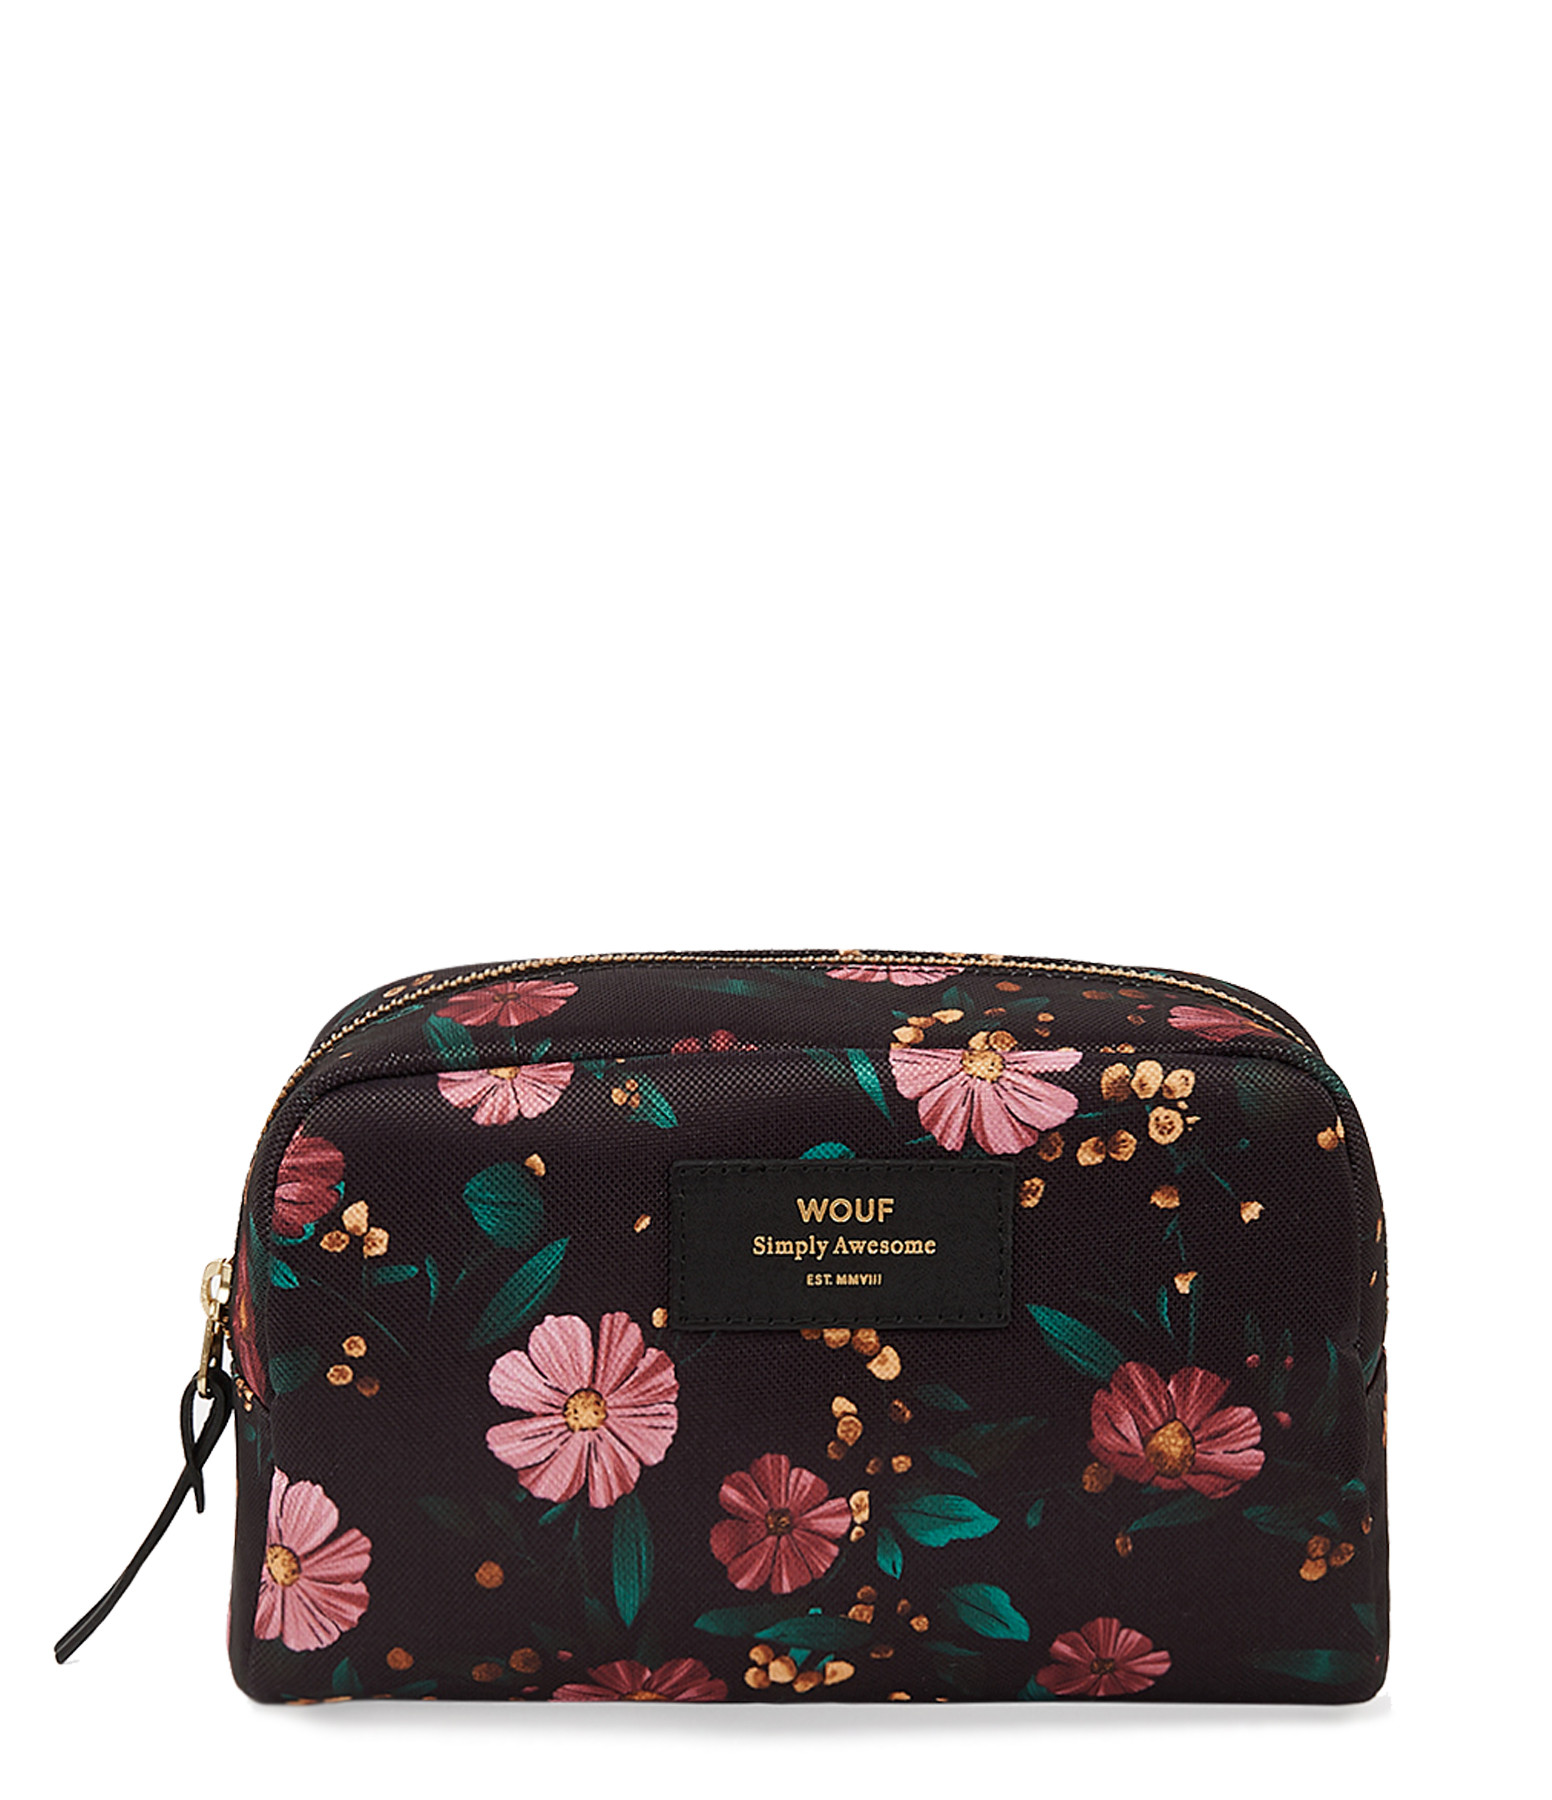 WOUF - Trousse Big Beauty Black Flowers